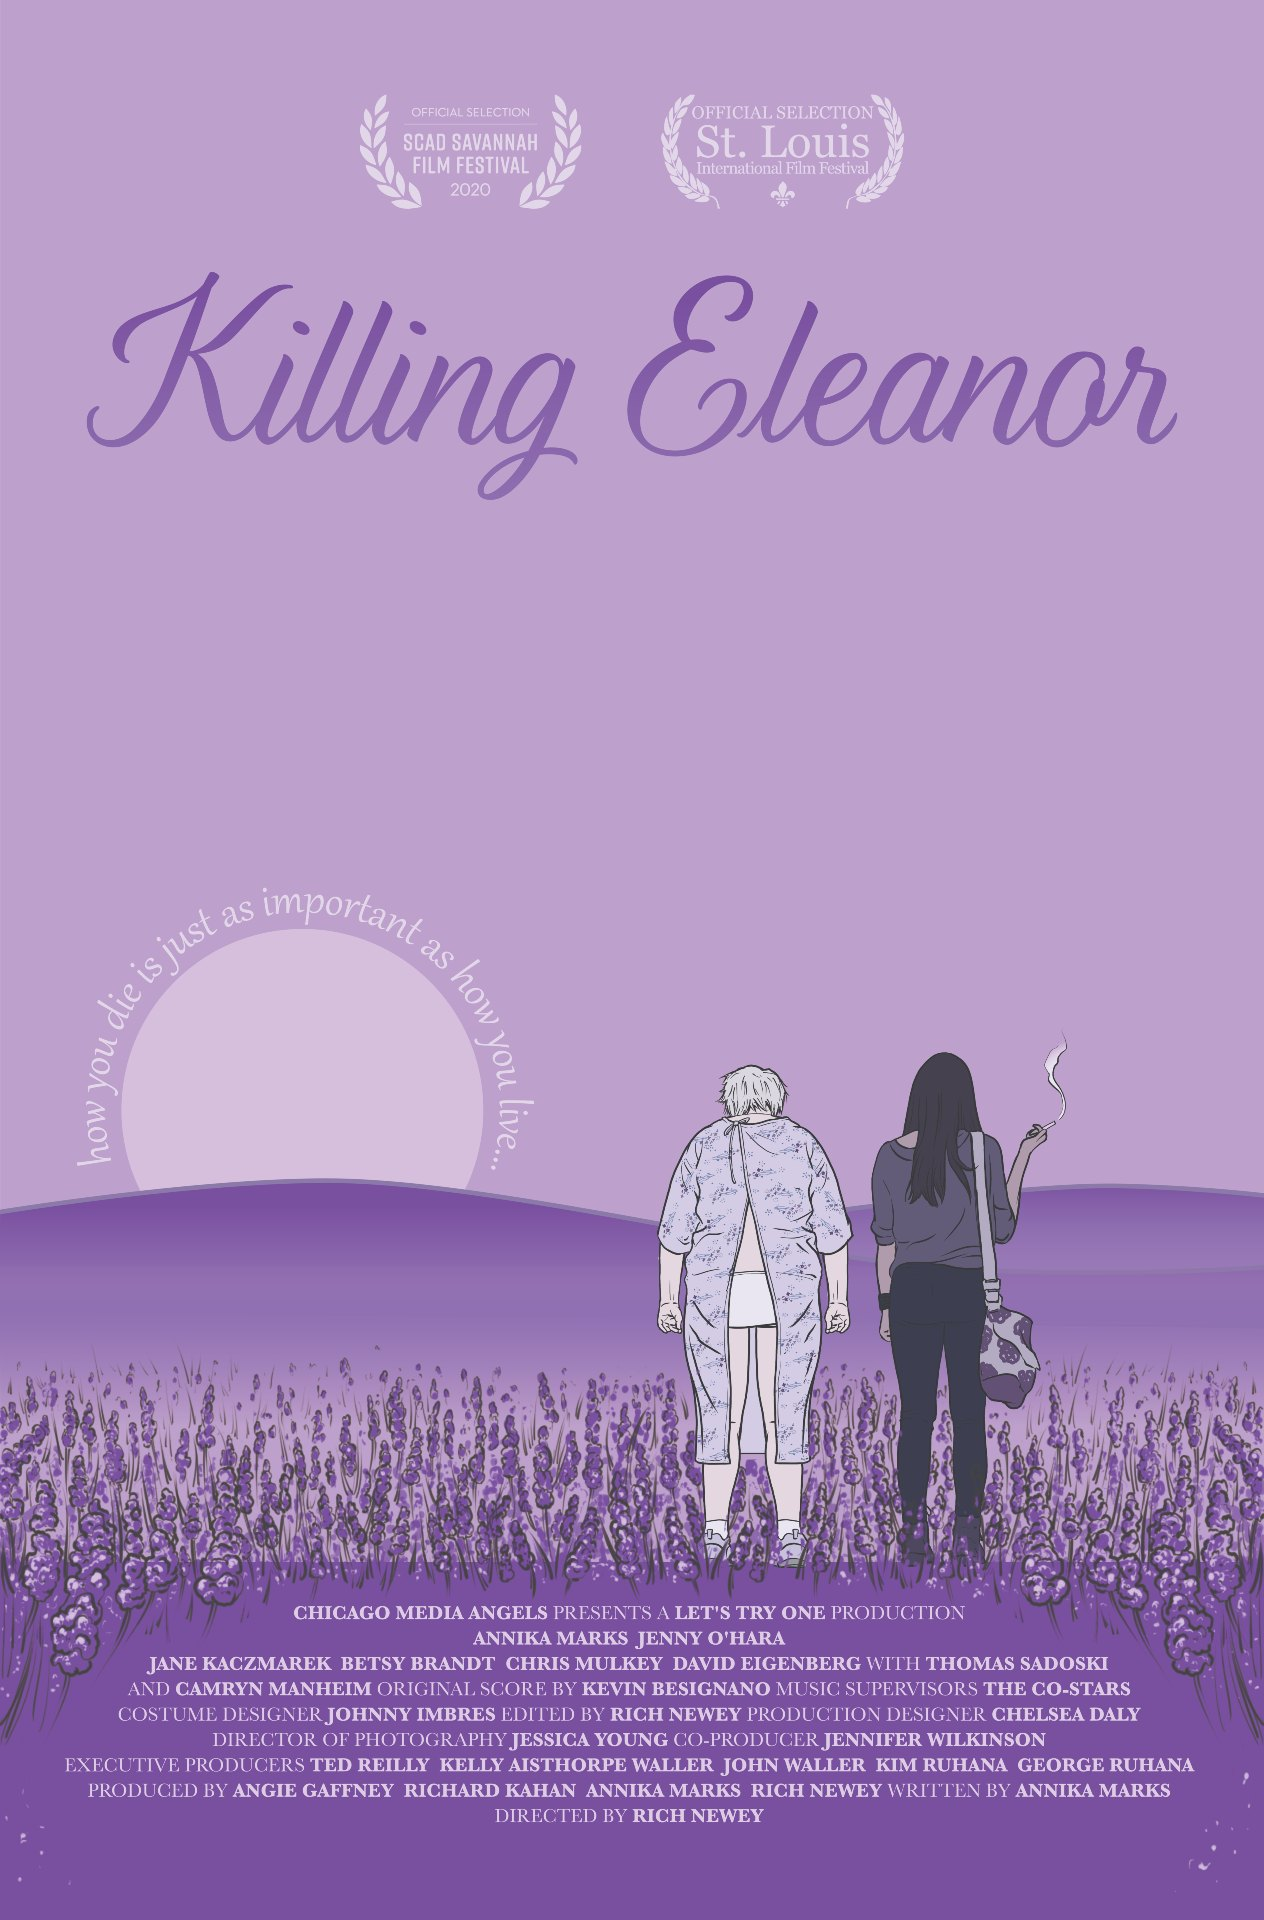 'Killing Eleanor' is the new film by director Rich Newey. We got a chance to interview Newey about the film and female representation.